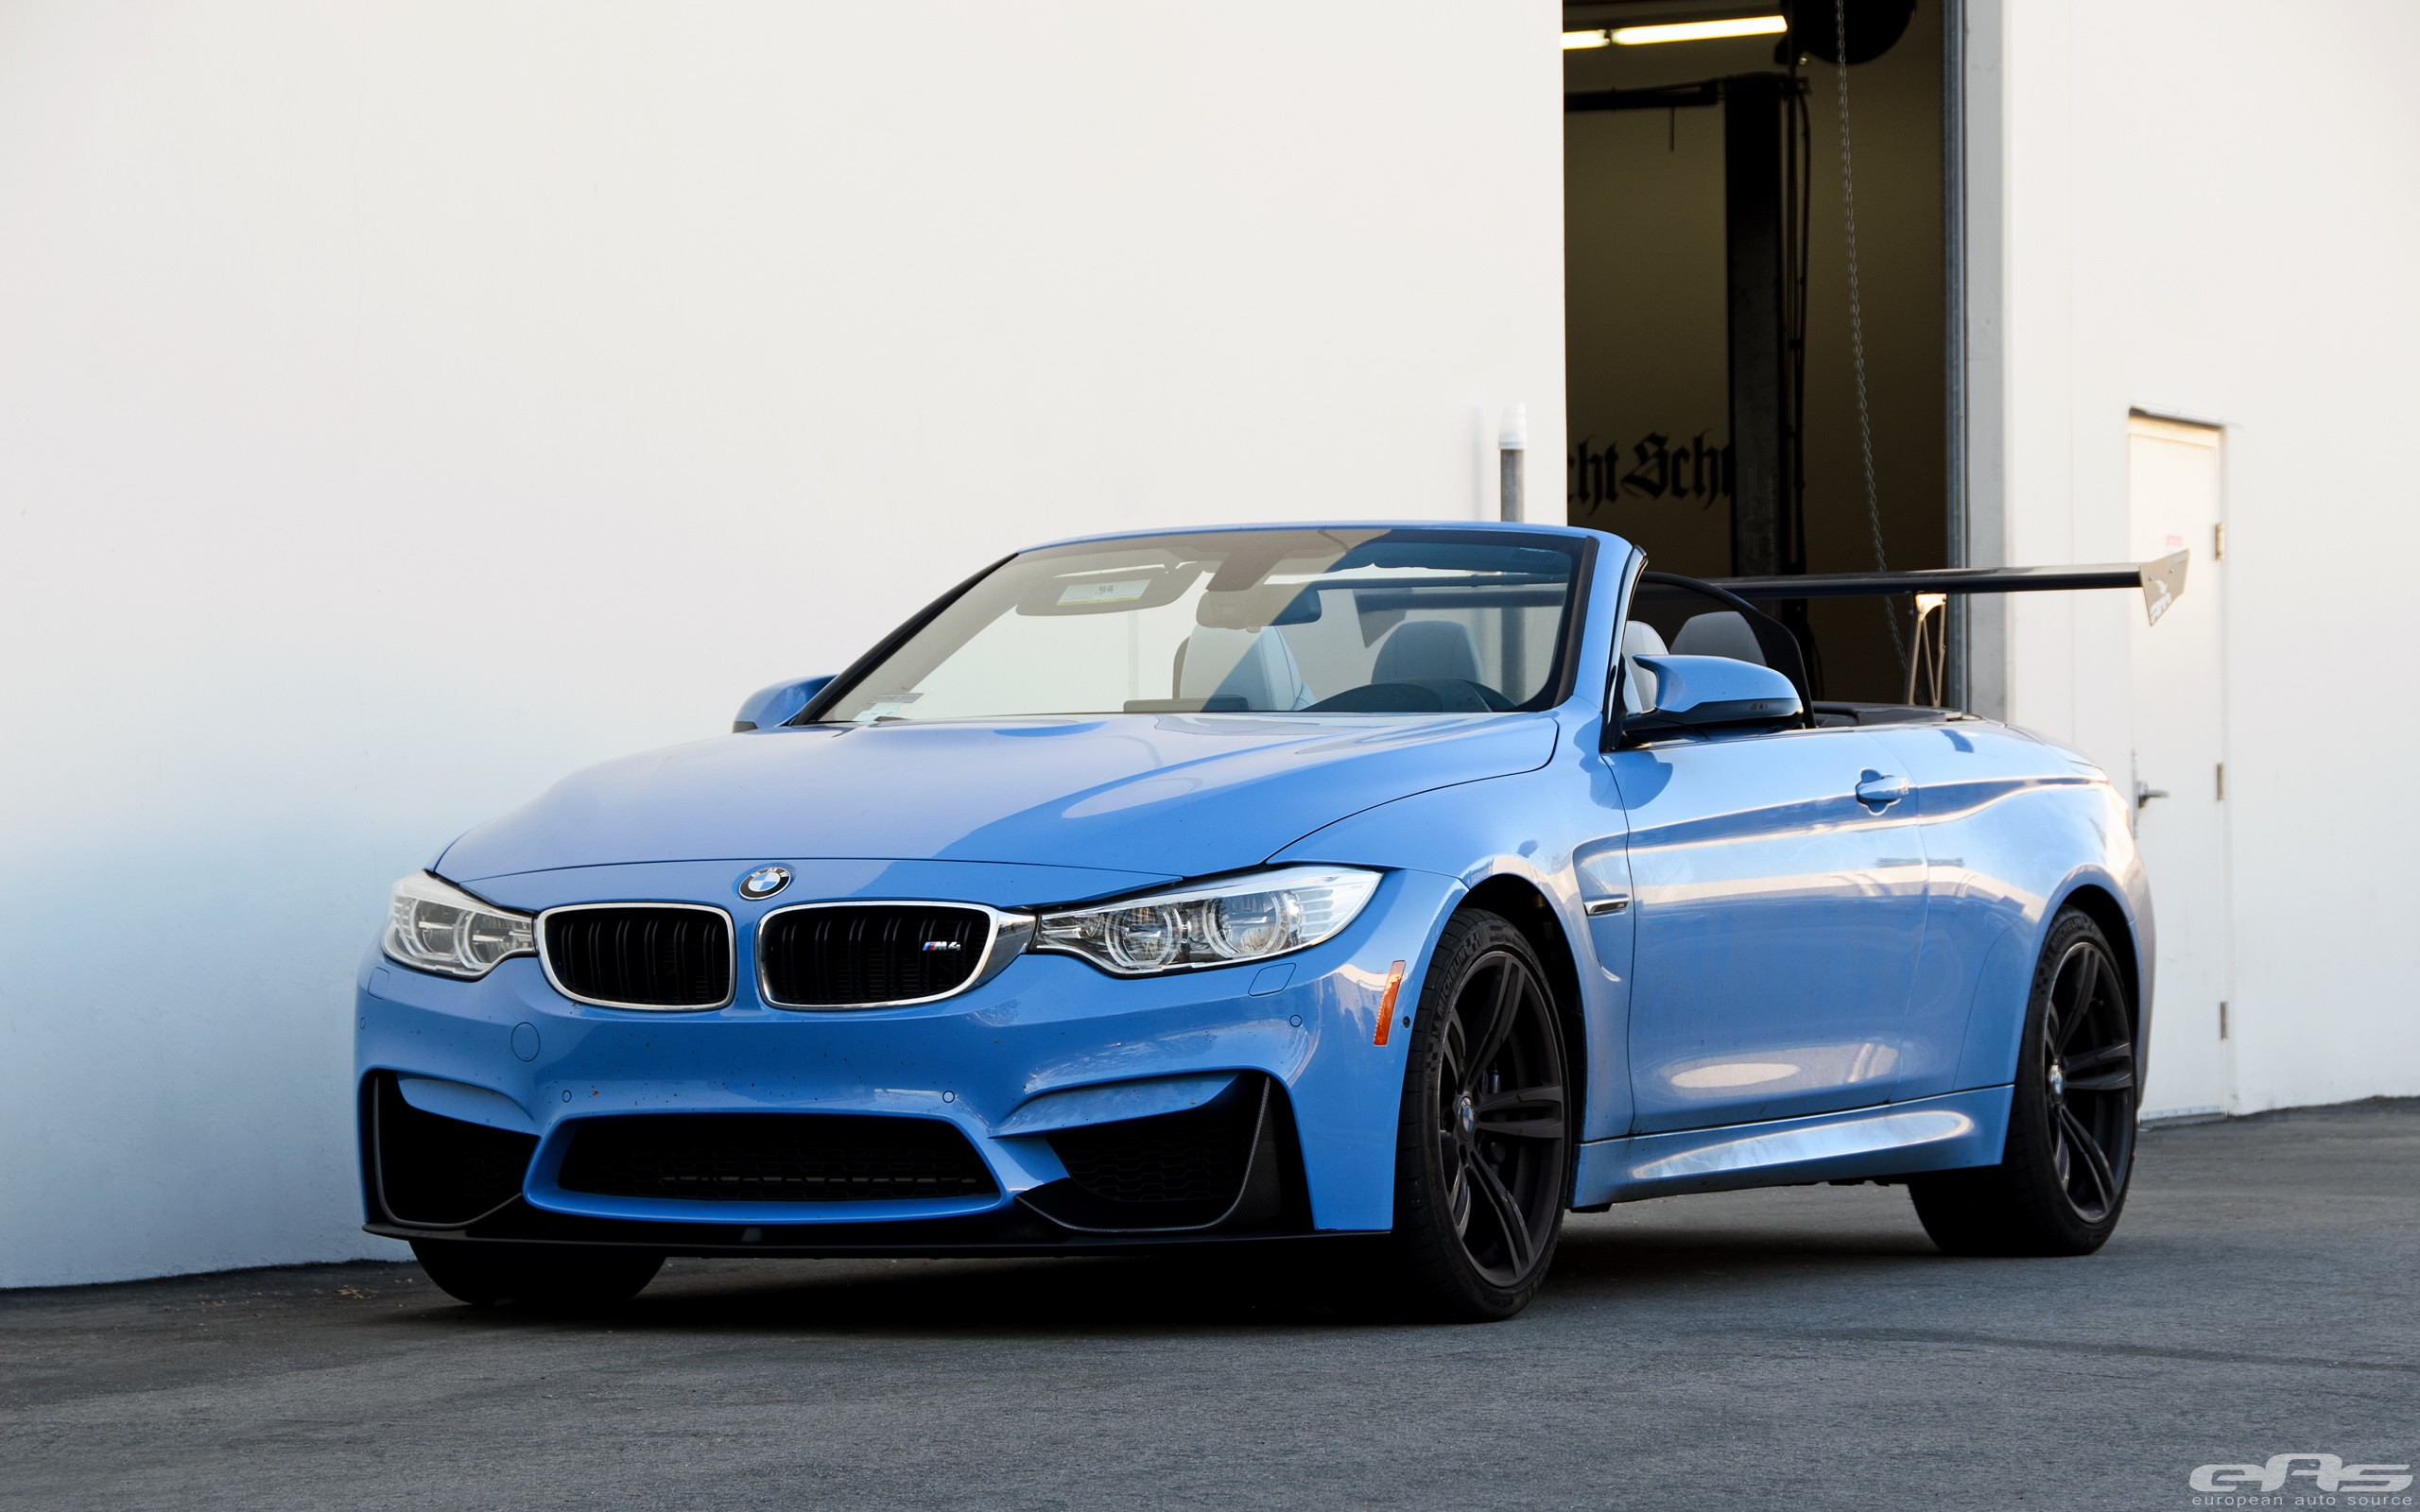 blue convertible bmw m4 - photo #7